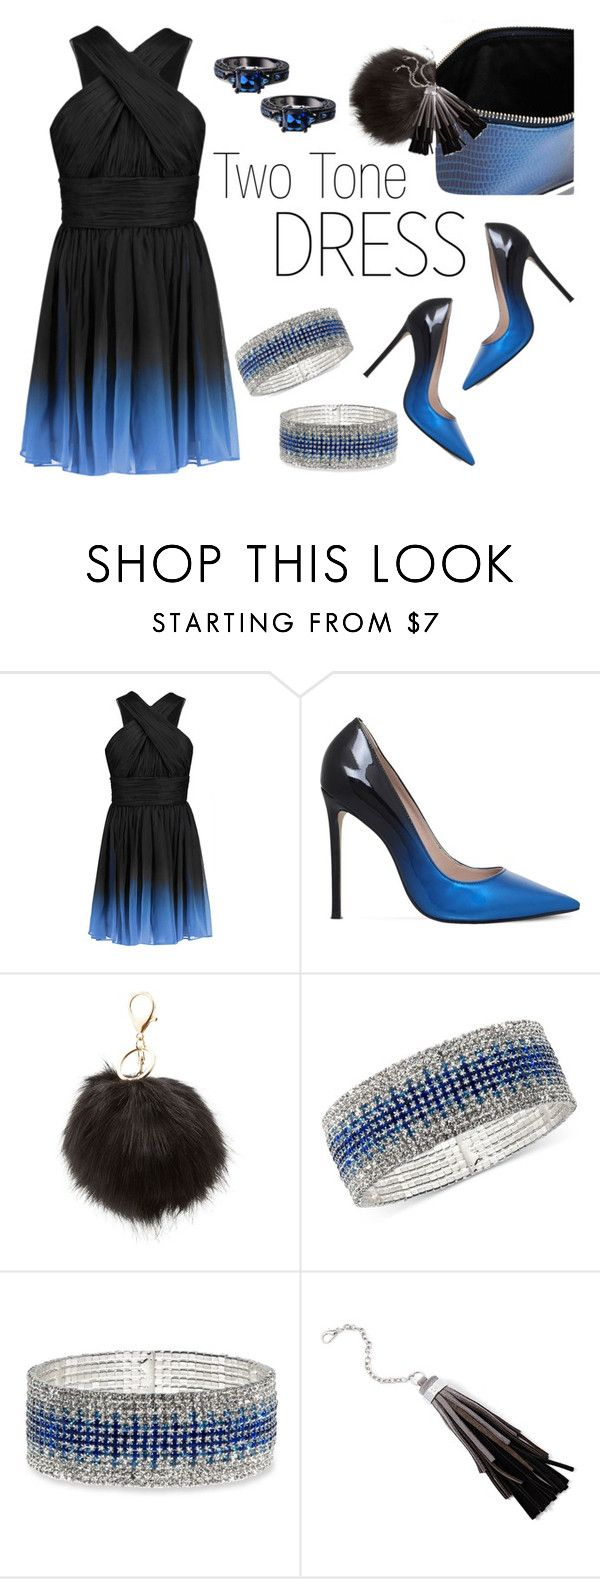 """""""On Trend: Two-Tone Dresses Contest"""" by texasradiance ❤ liked on Polyvore featuring Halston Heritage, Carvela, Charlotte Russe, Anne Klein and Lauren Ralph Lauren"""